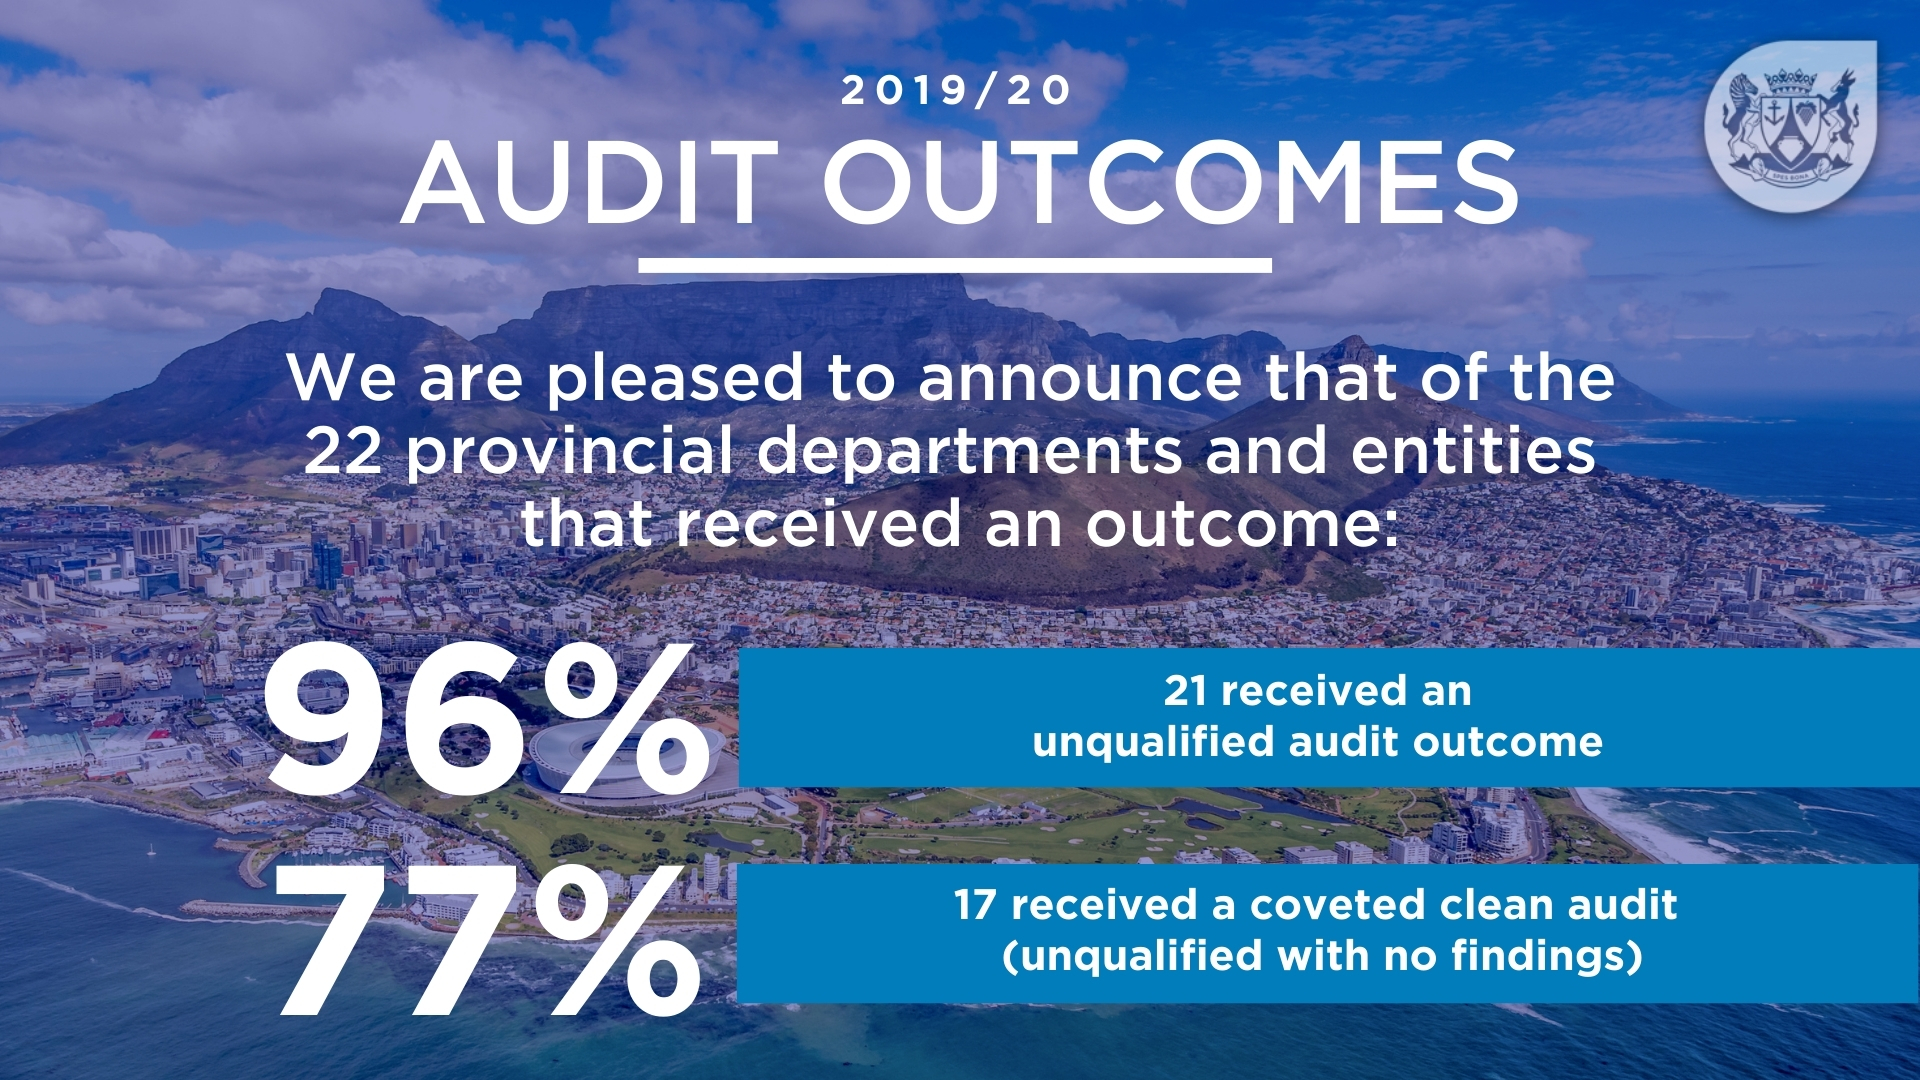 2019/20 Audit Outcomes